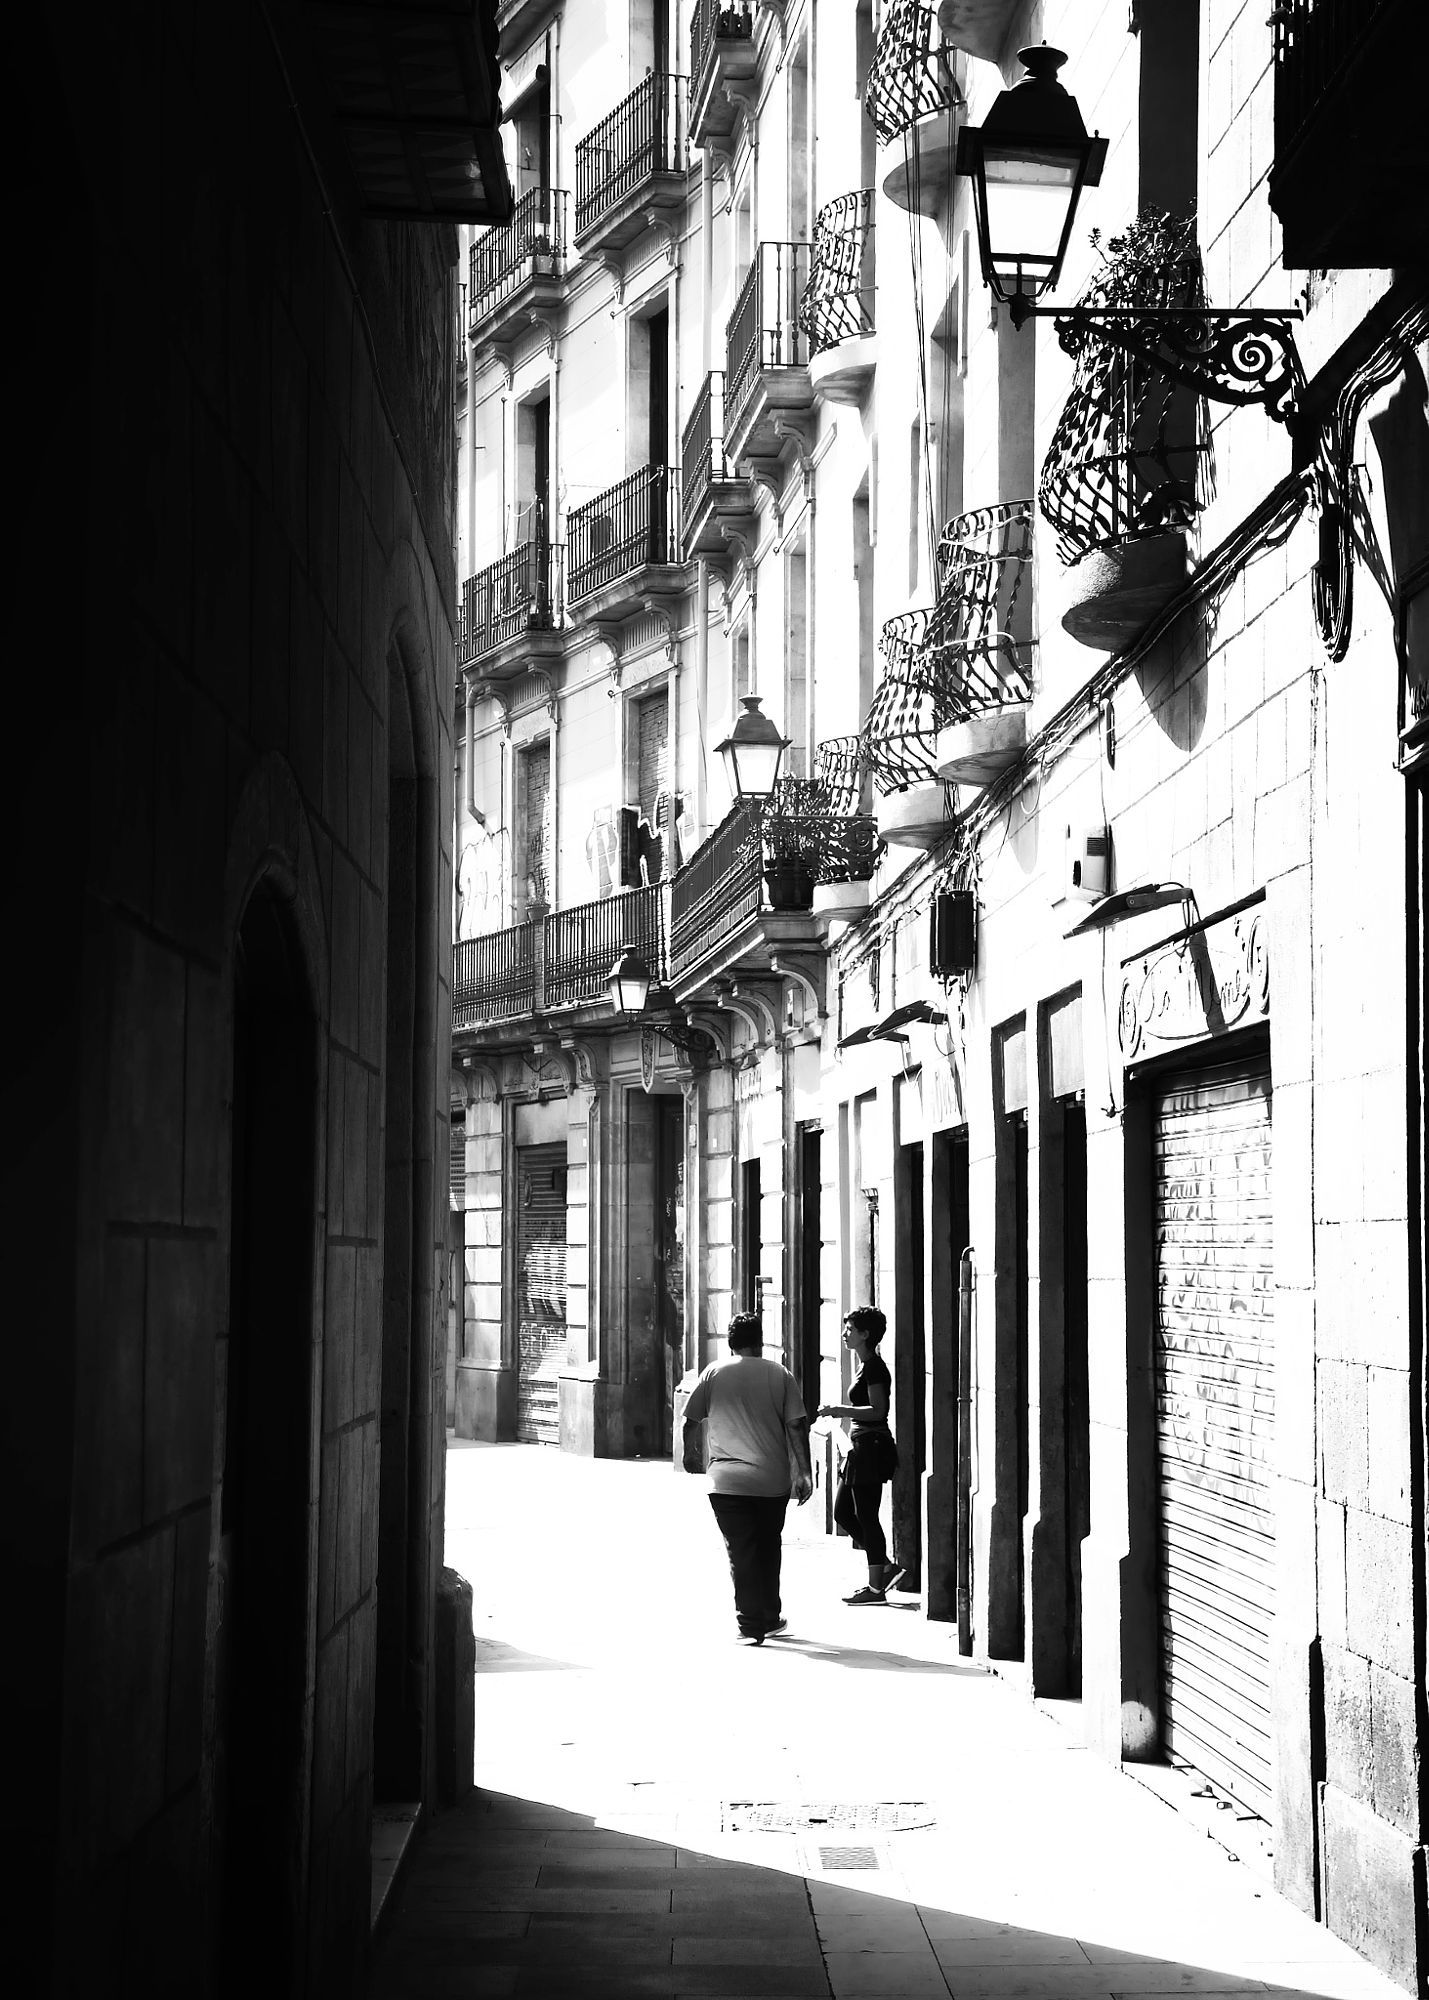 Street Photography : Nada Como El Sol by Tom_rOmy https://t.co/WXTnugUP0l | #streets #photography #photos #500px https://t.co/xSj4e9UIfp  #photography